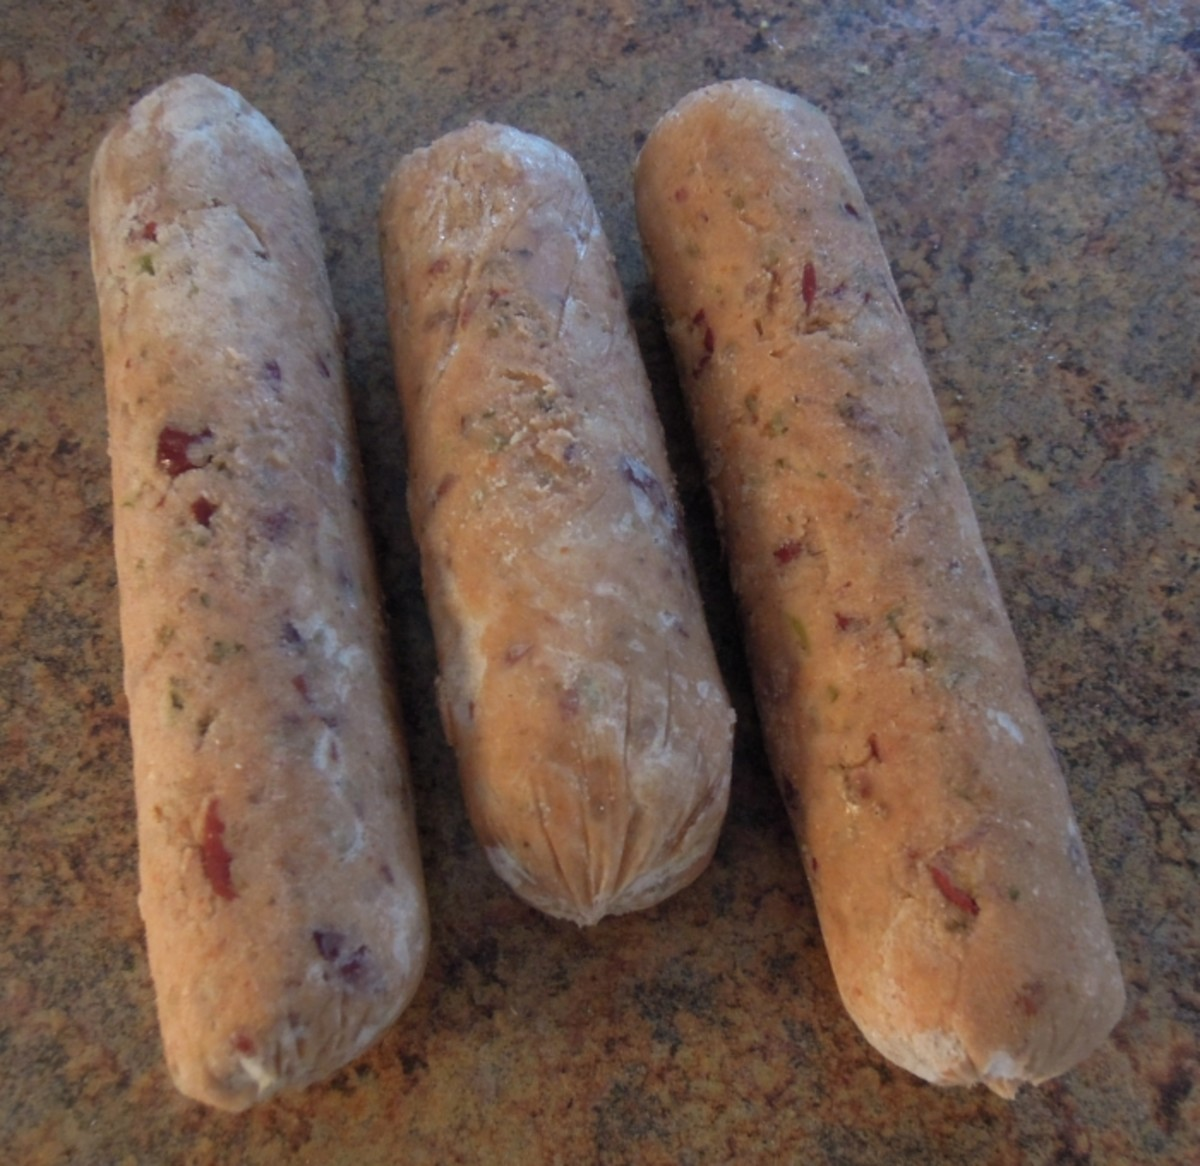 Frozen vegan bean sausages.